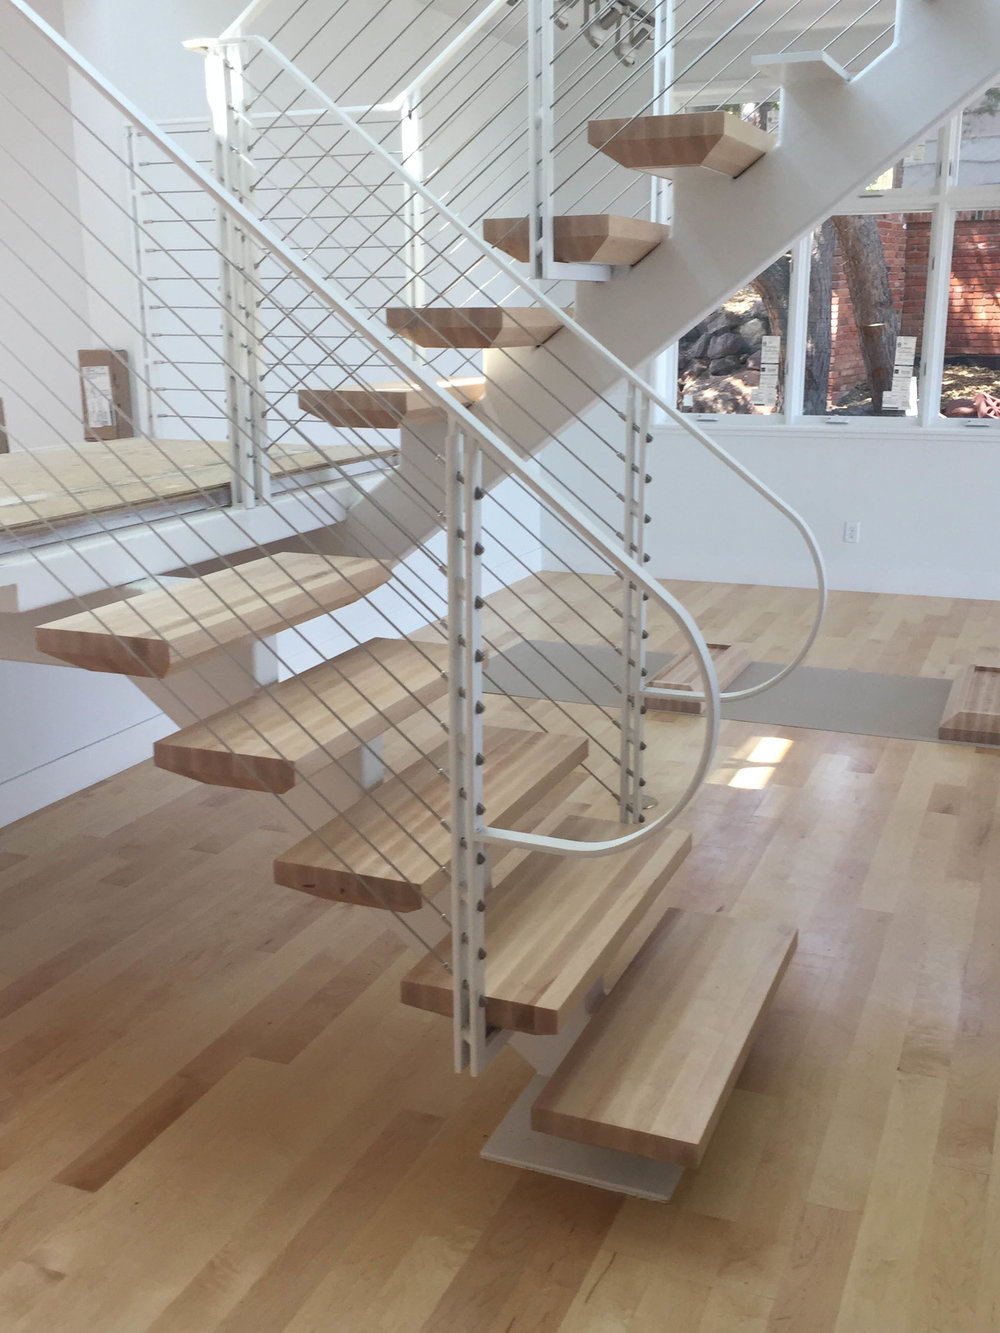 singlesteel stringer stair with wood treads.jpg